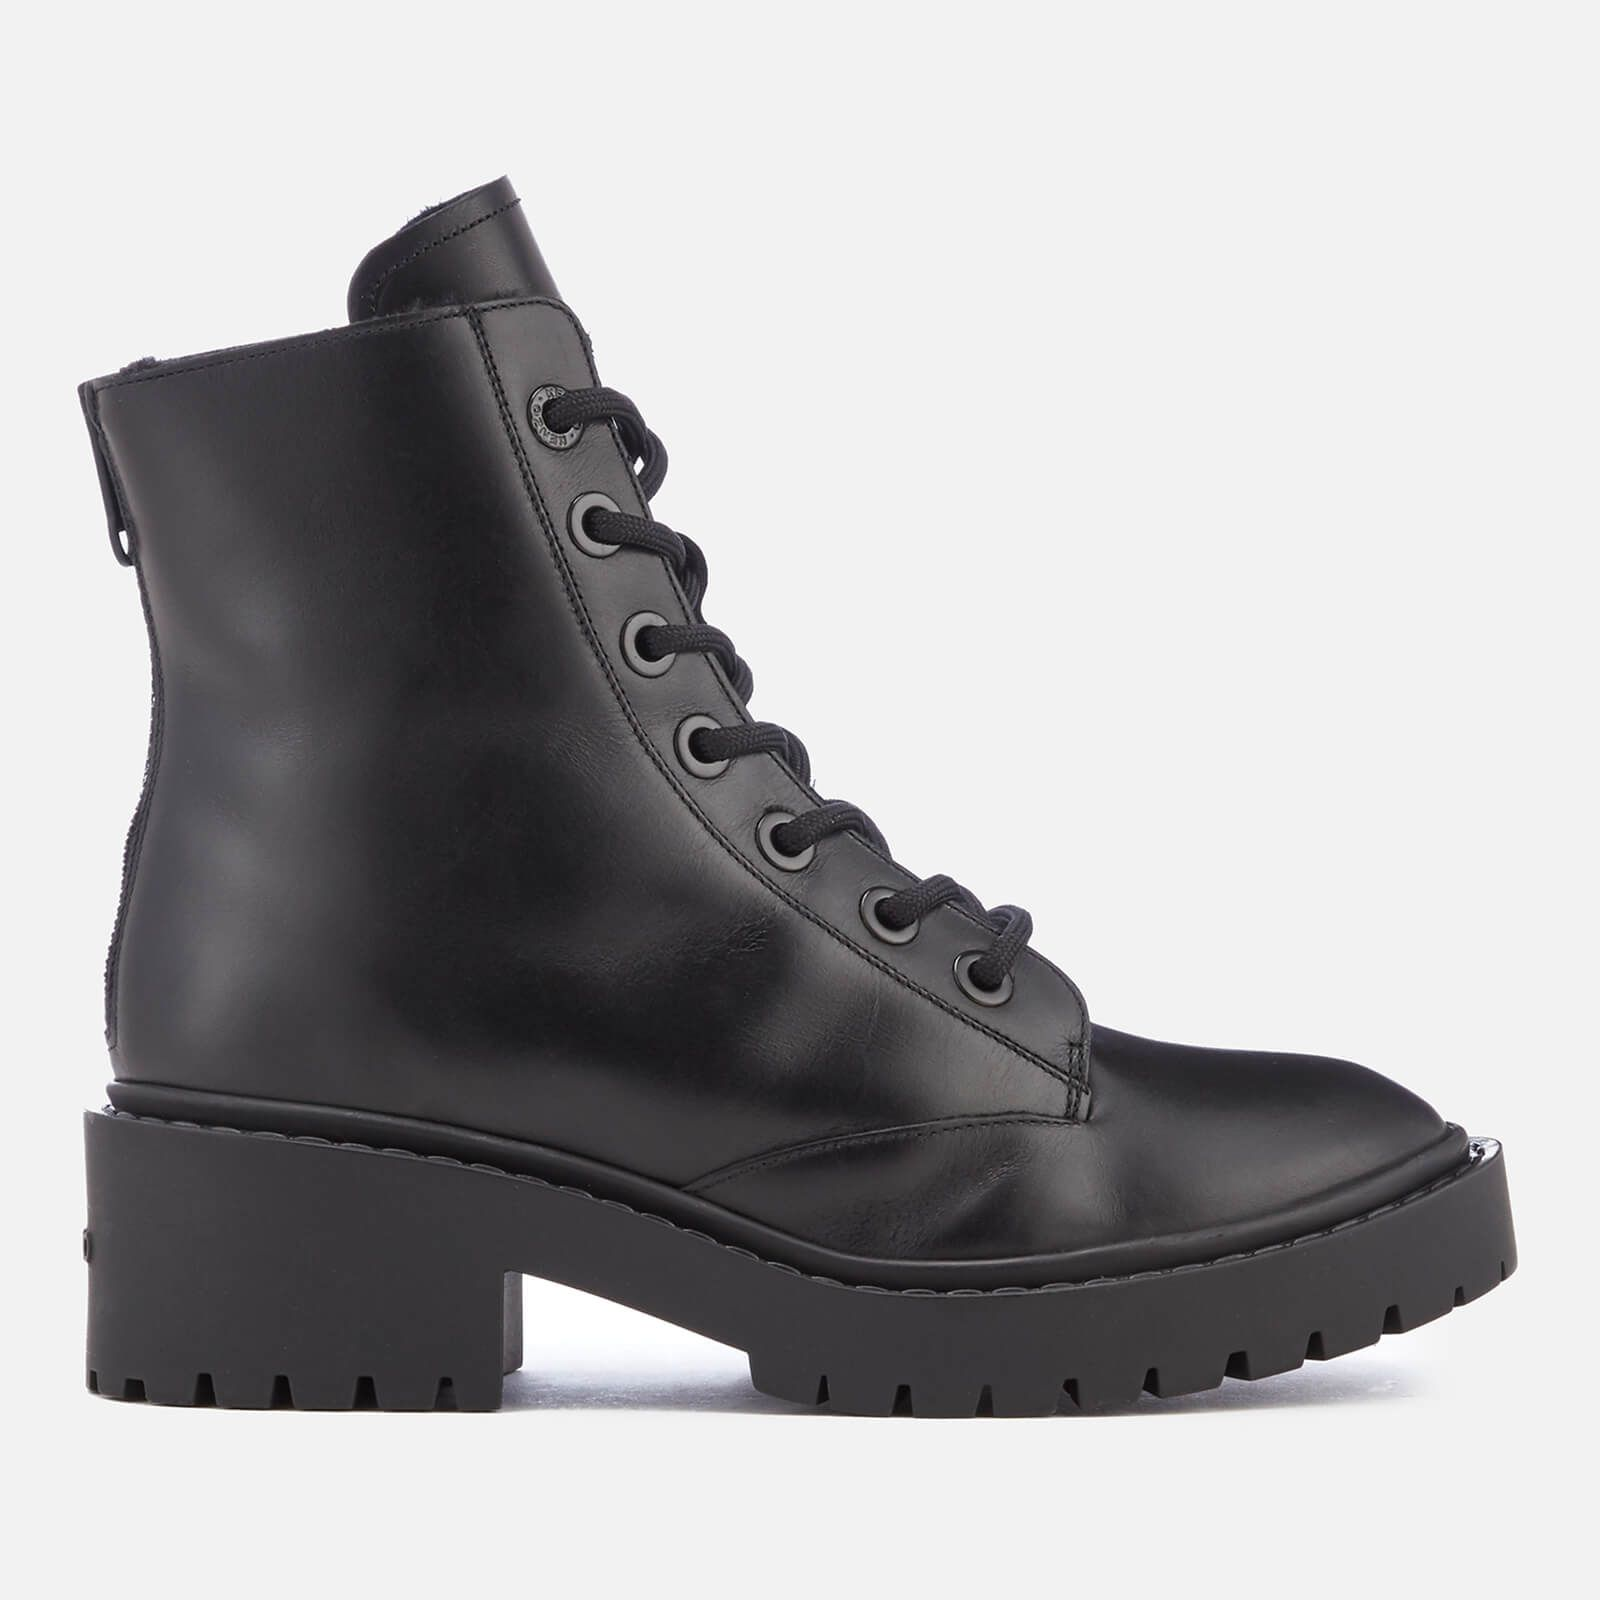 2163ede07c KENZO Women | Men's Fashion Casual in 2019 | Black boots, Leather ...